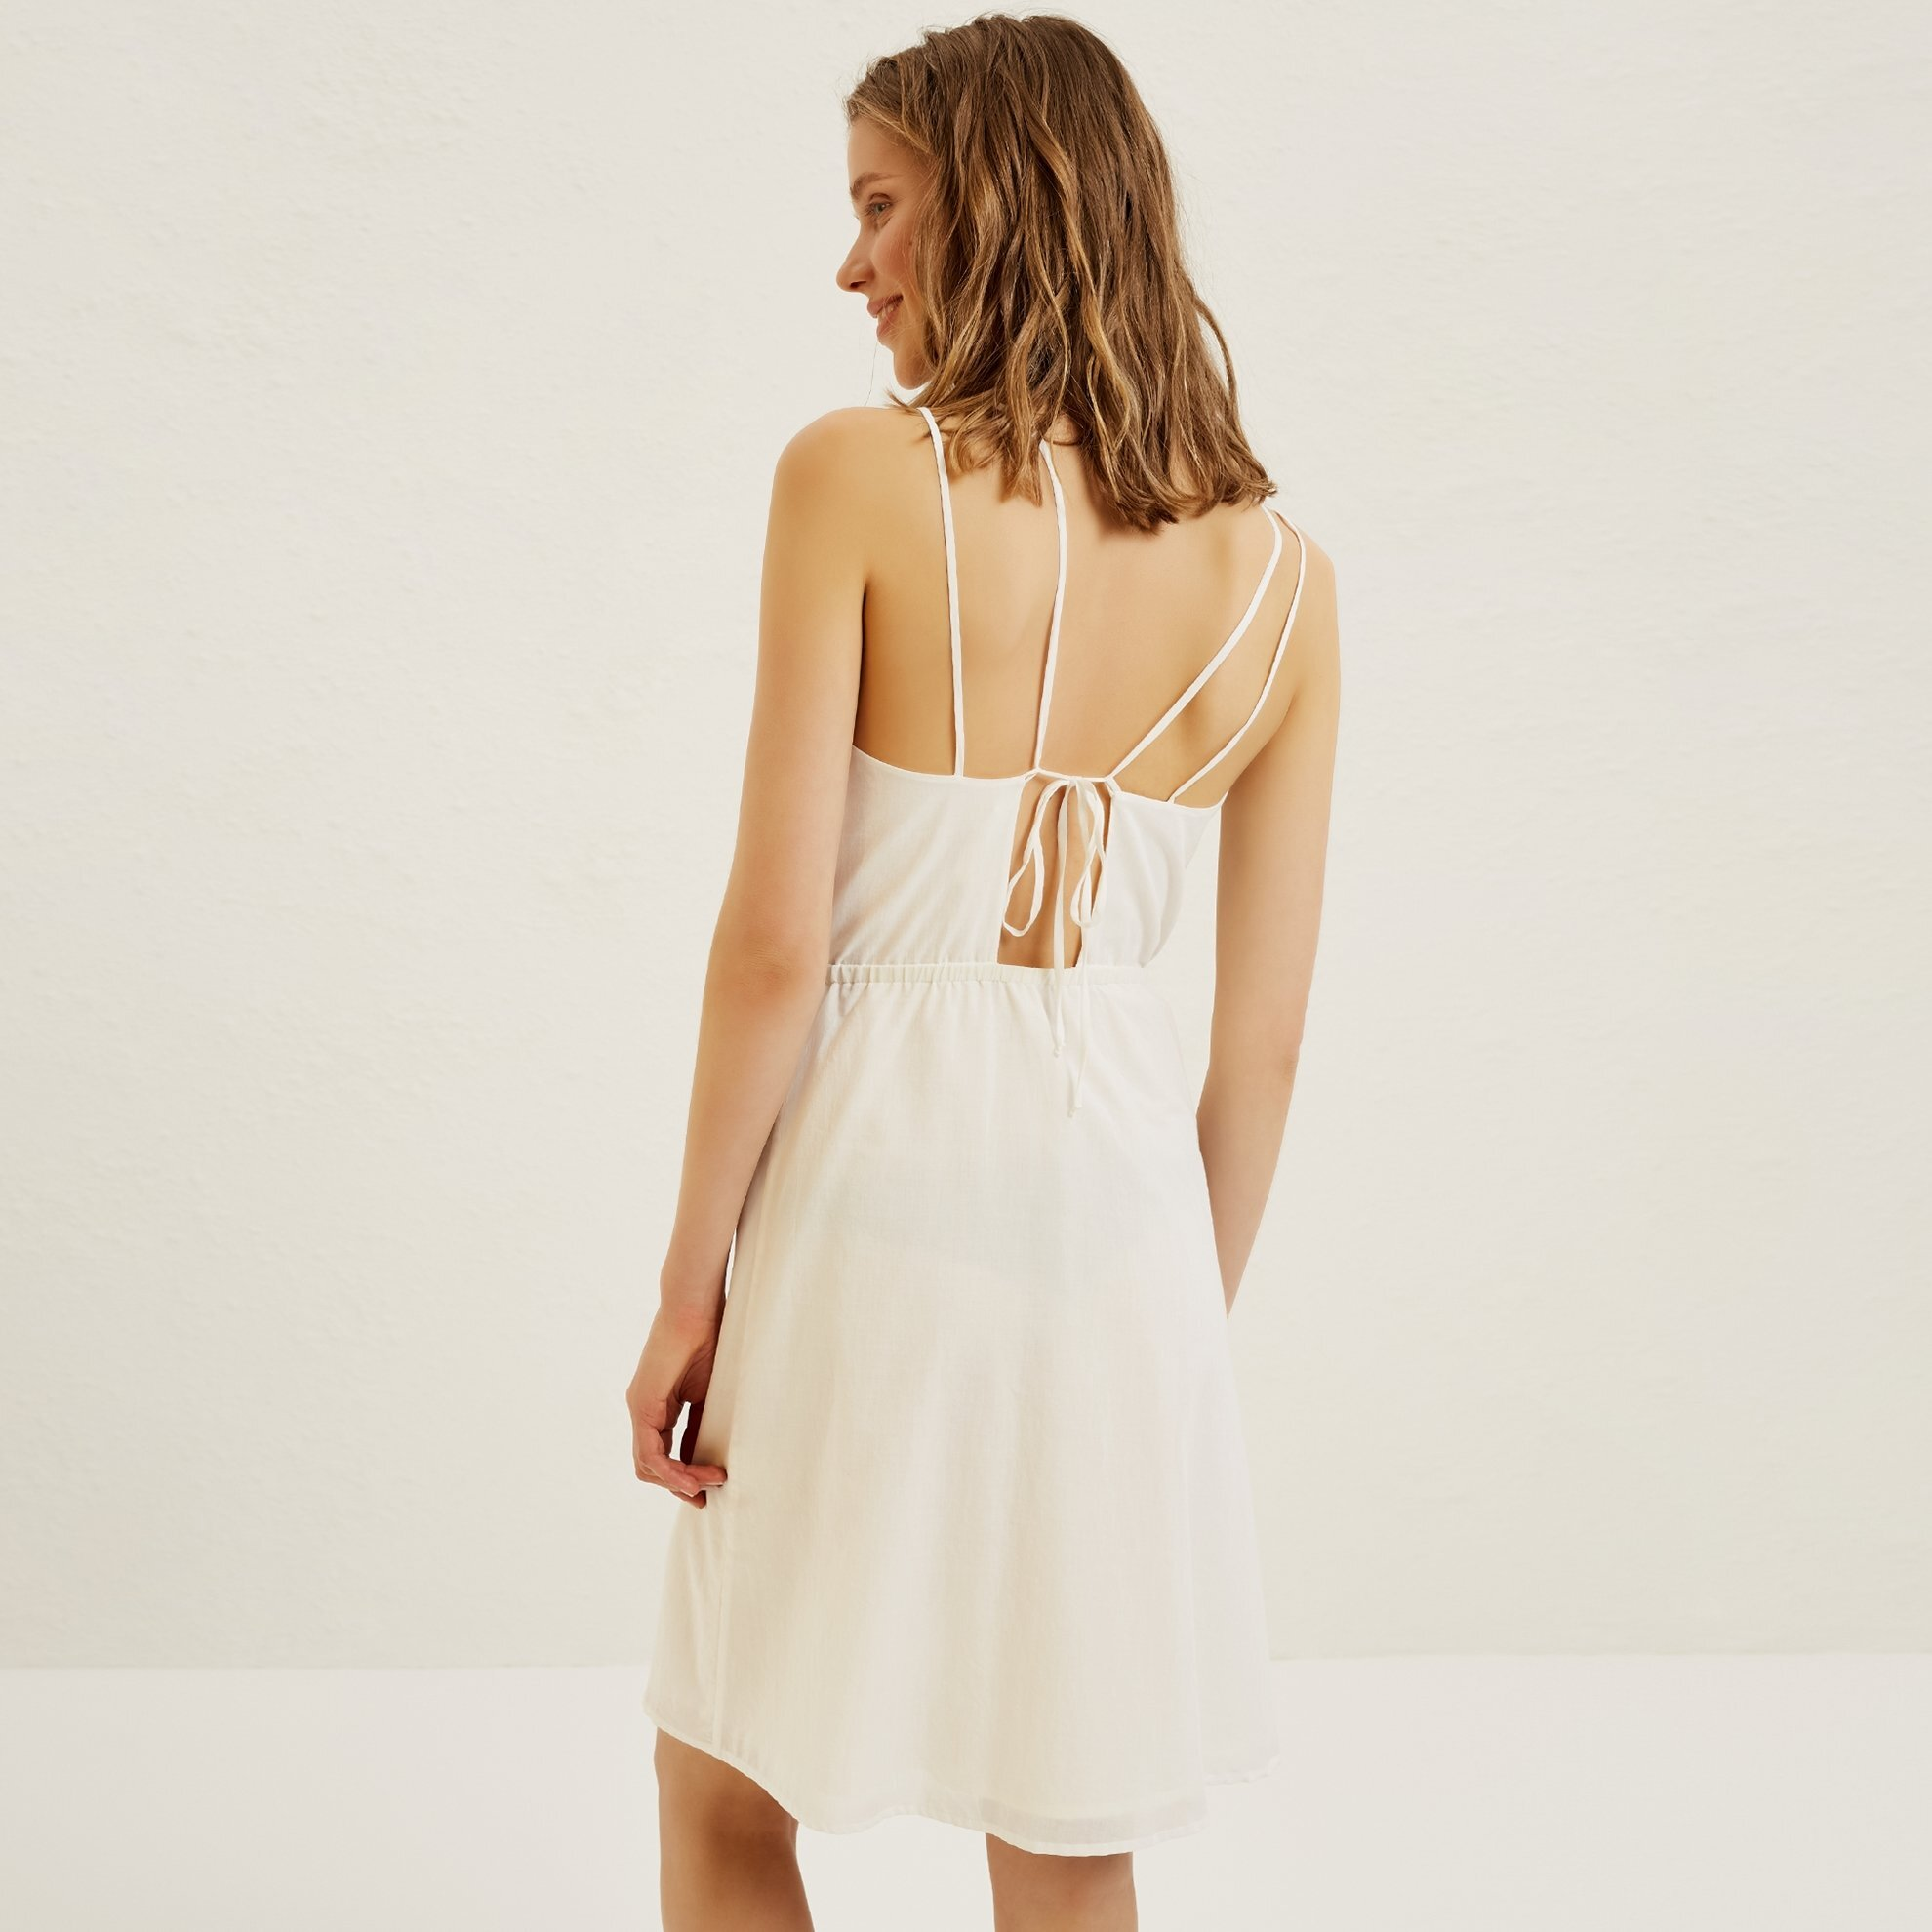 Embroidered Strappy Dress